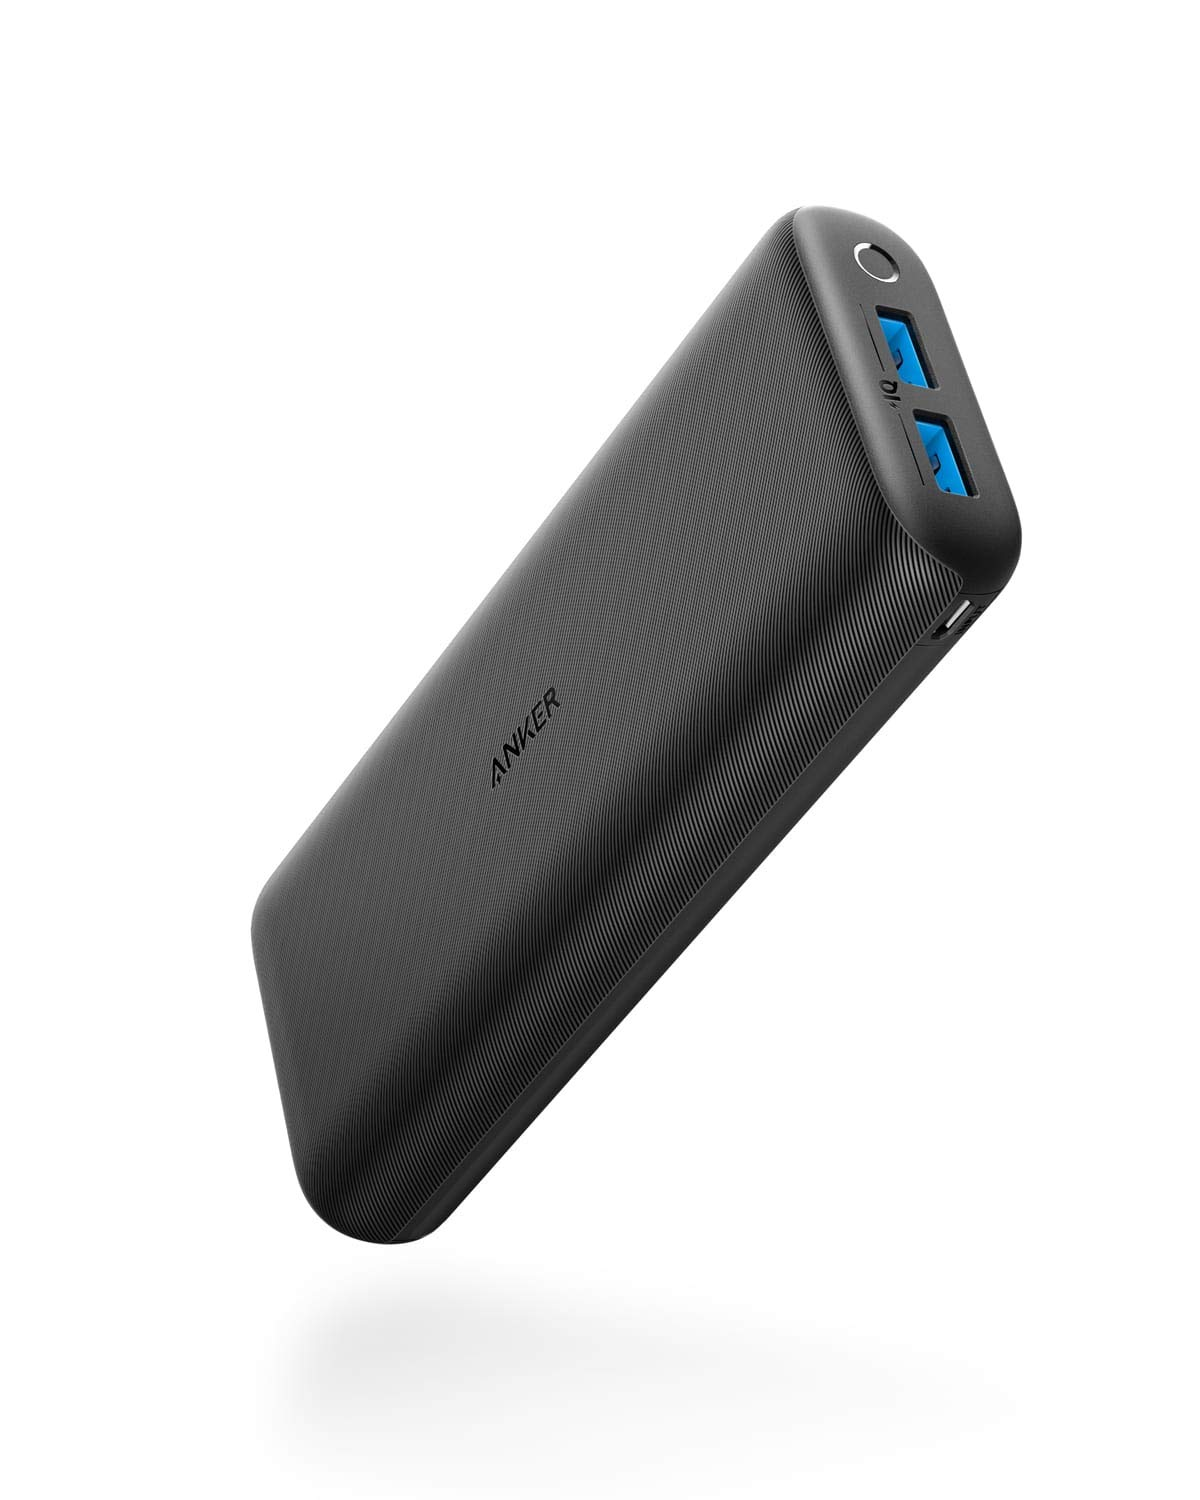 Anker PowerCore 20000 Redux, 20000mAh High Capacity Portable Charger Dual Port 4.8A Output Compact Power Bank for iPhone, Samsung Galaxy, and More